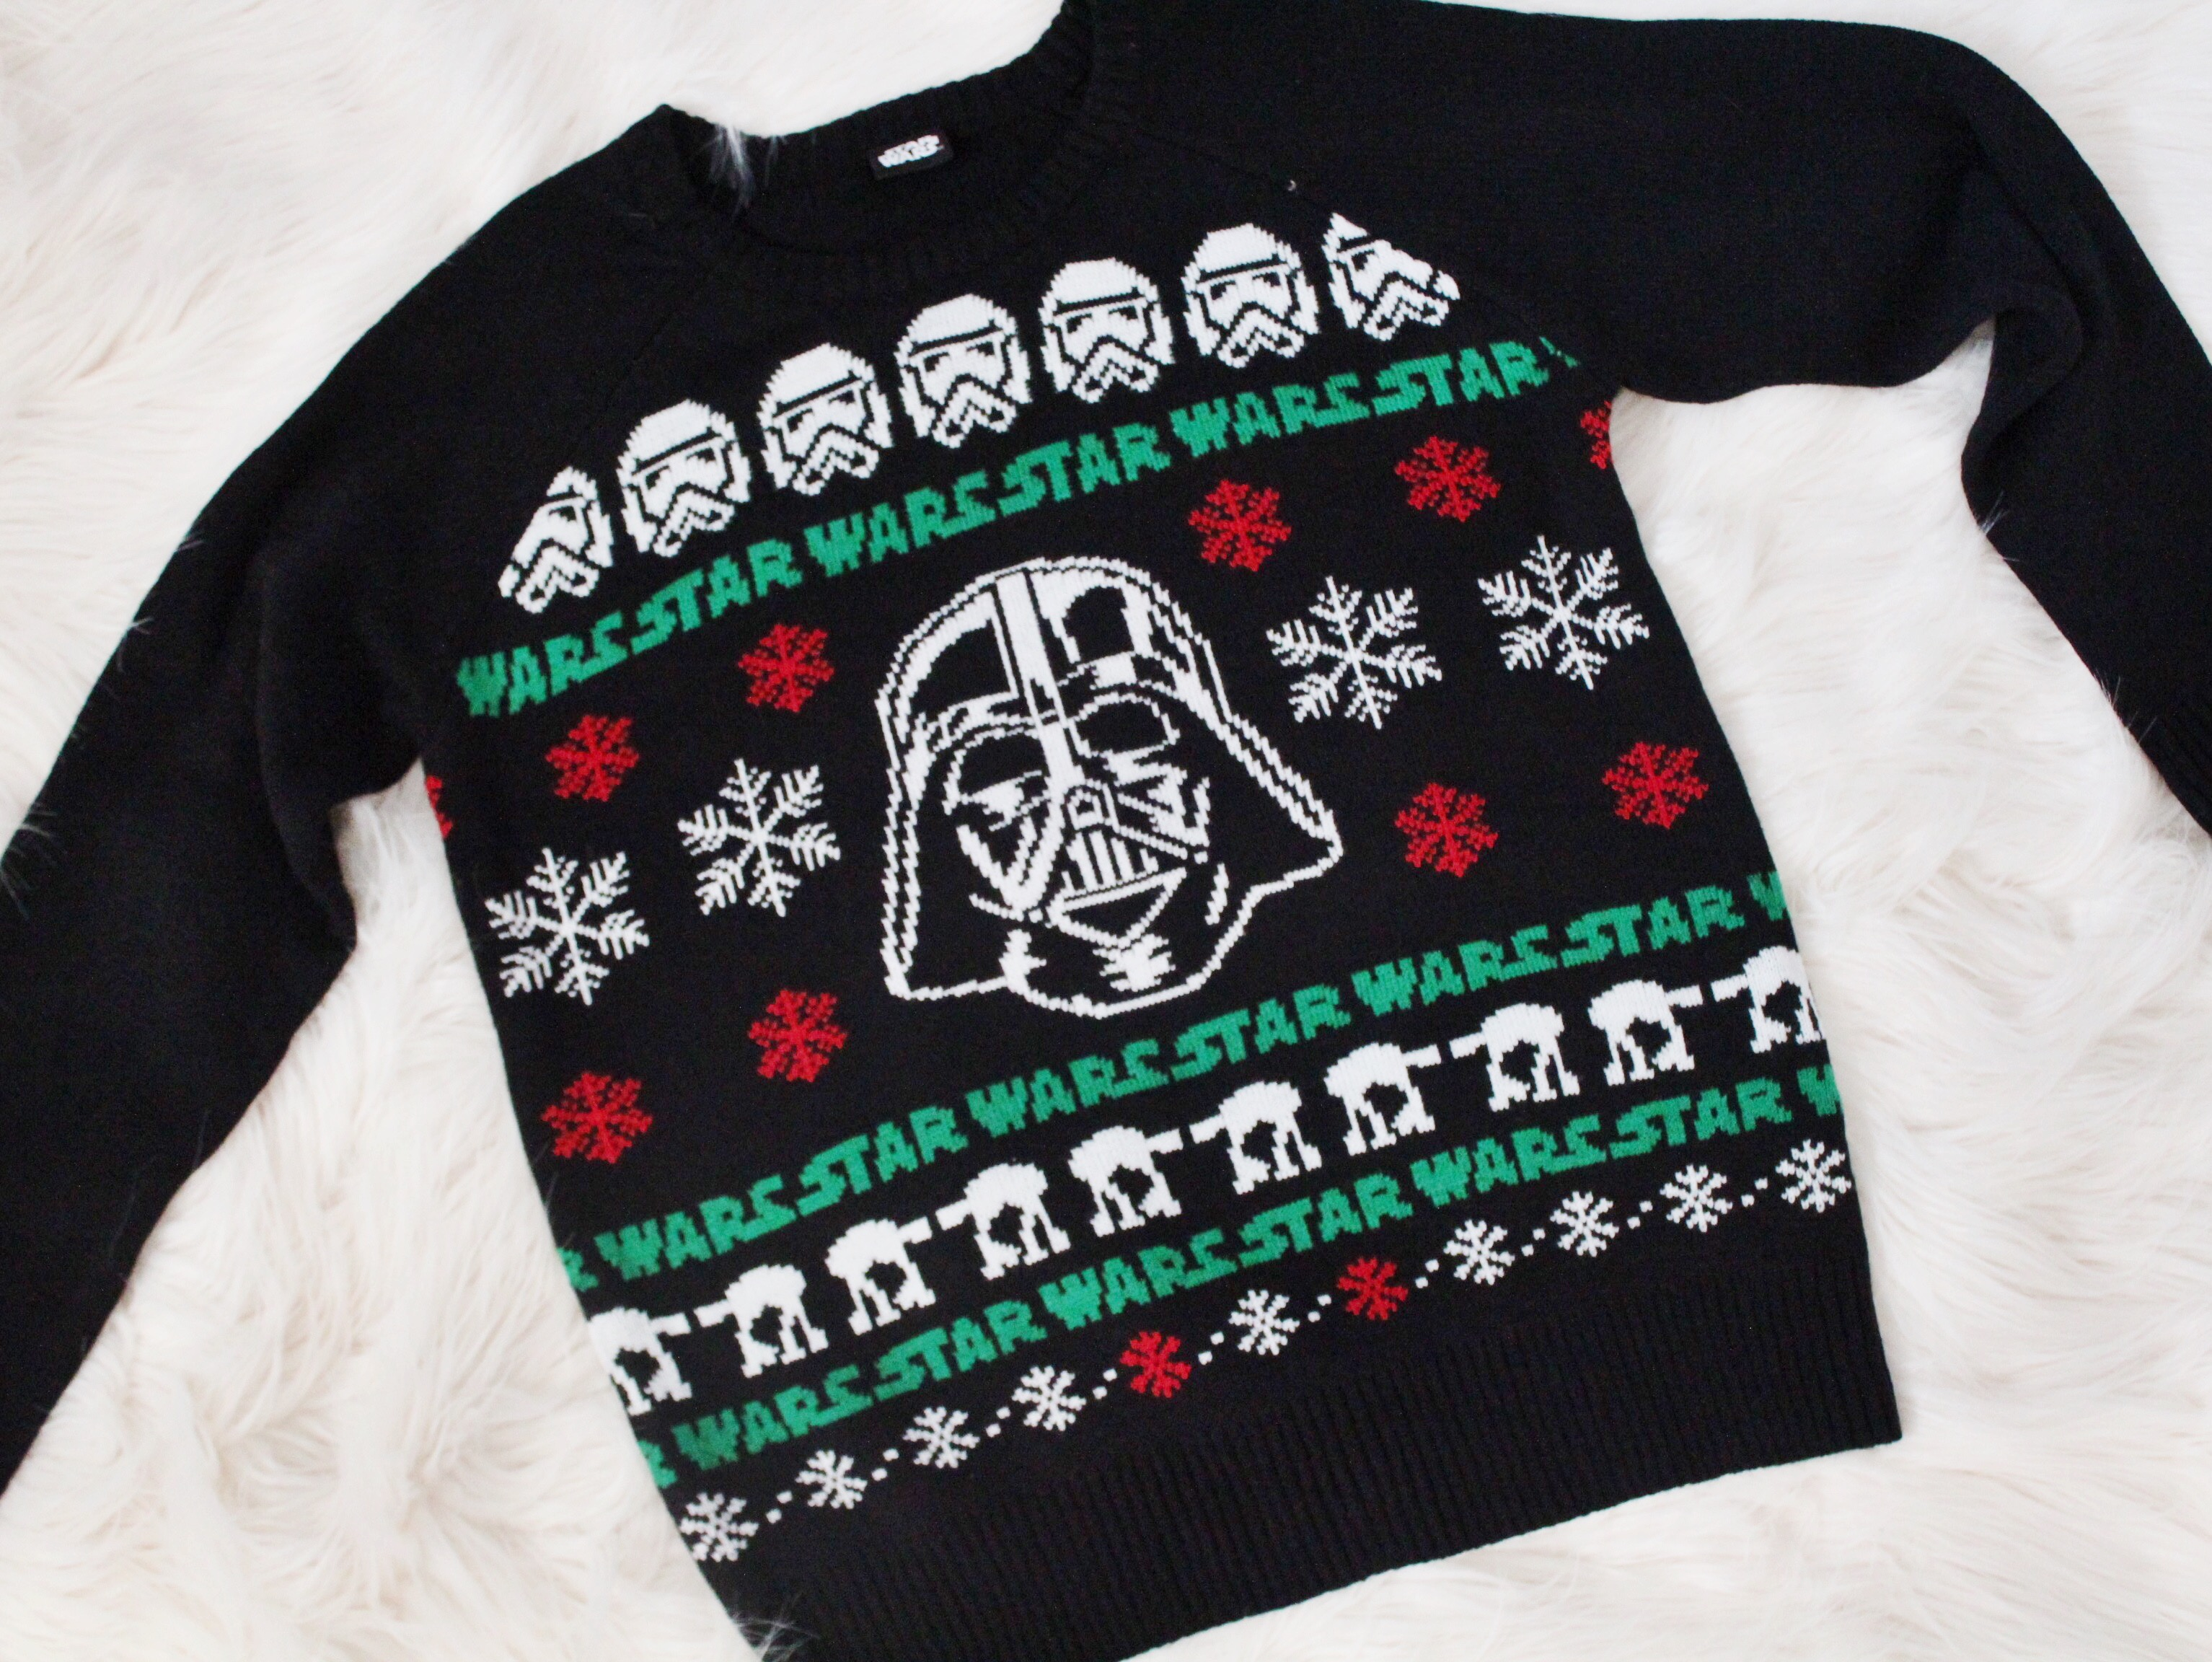 star wars ugly christmas sweater target - Star Wars Ugly Christmas Sweater